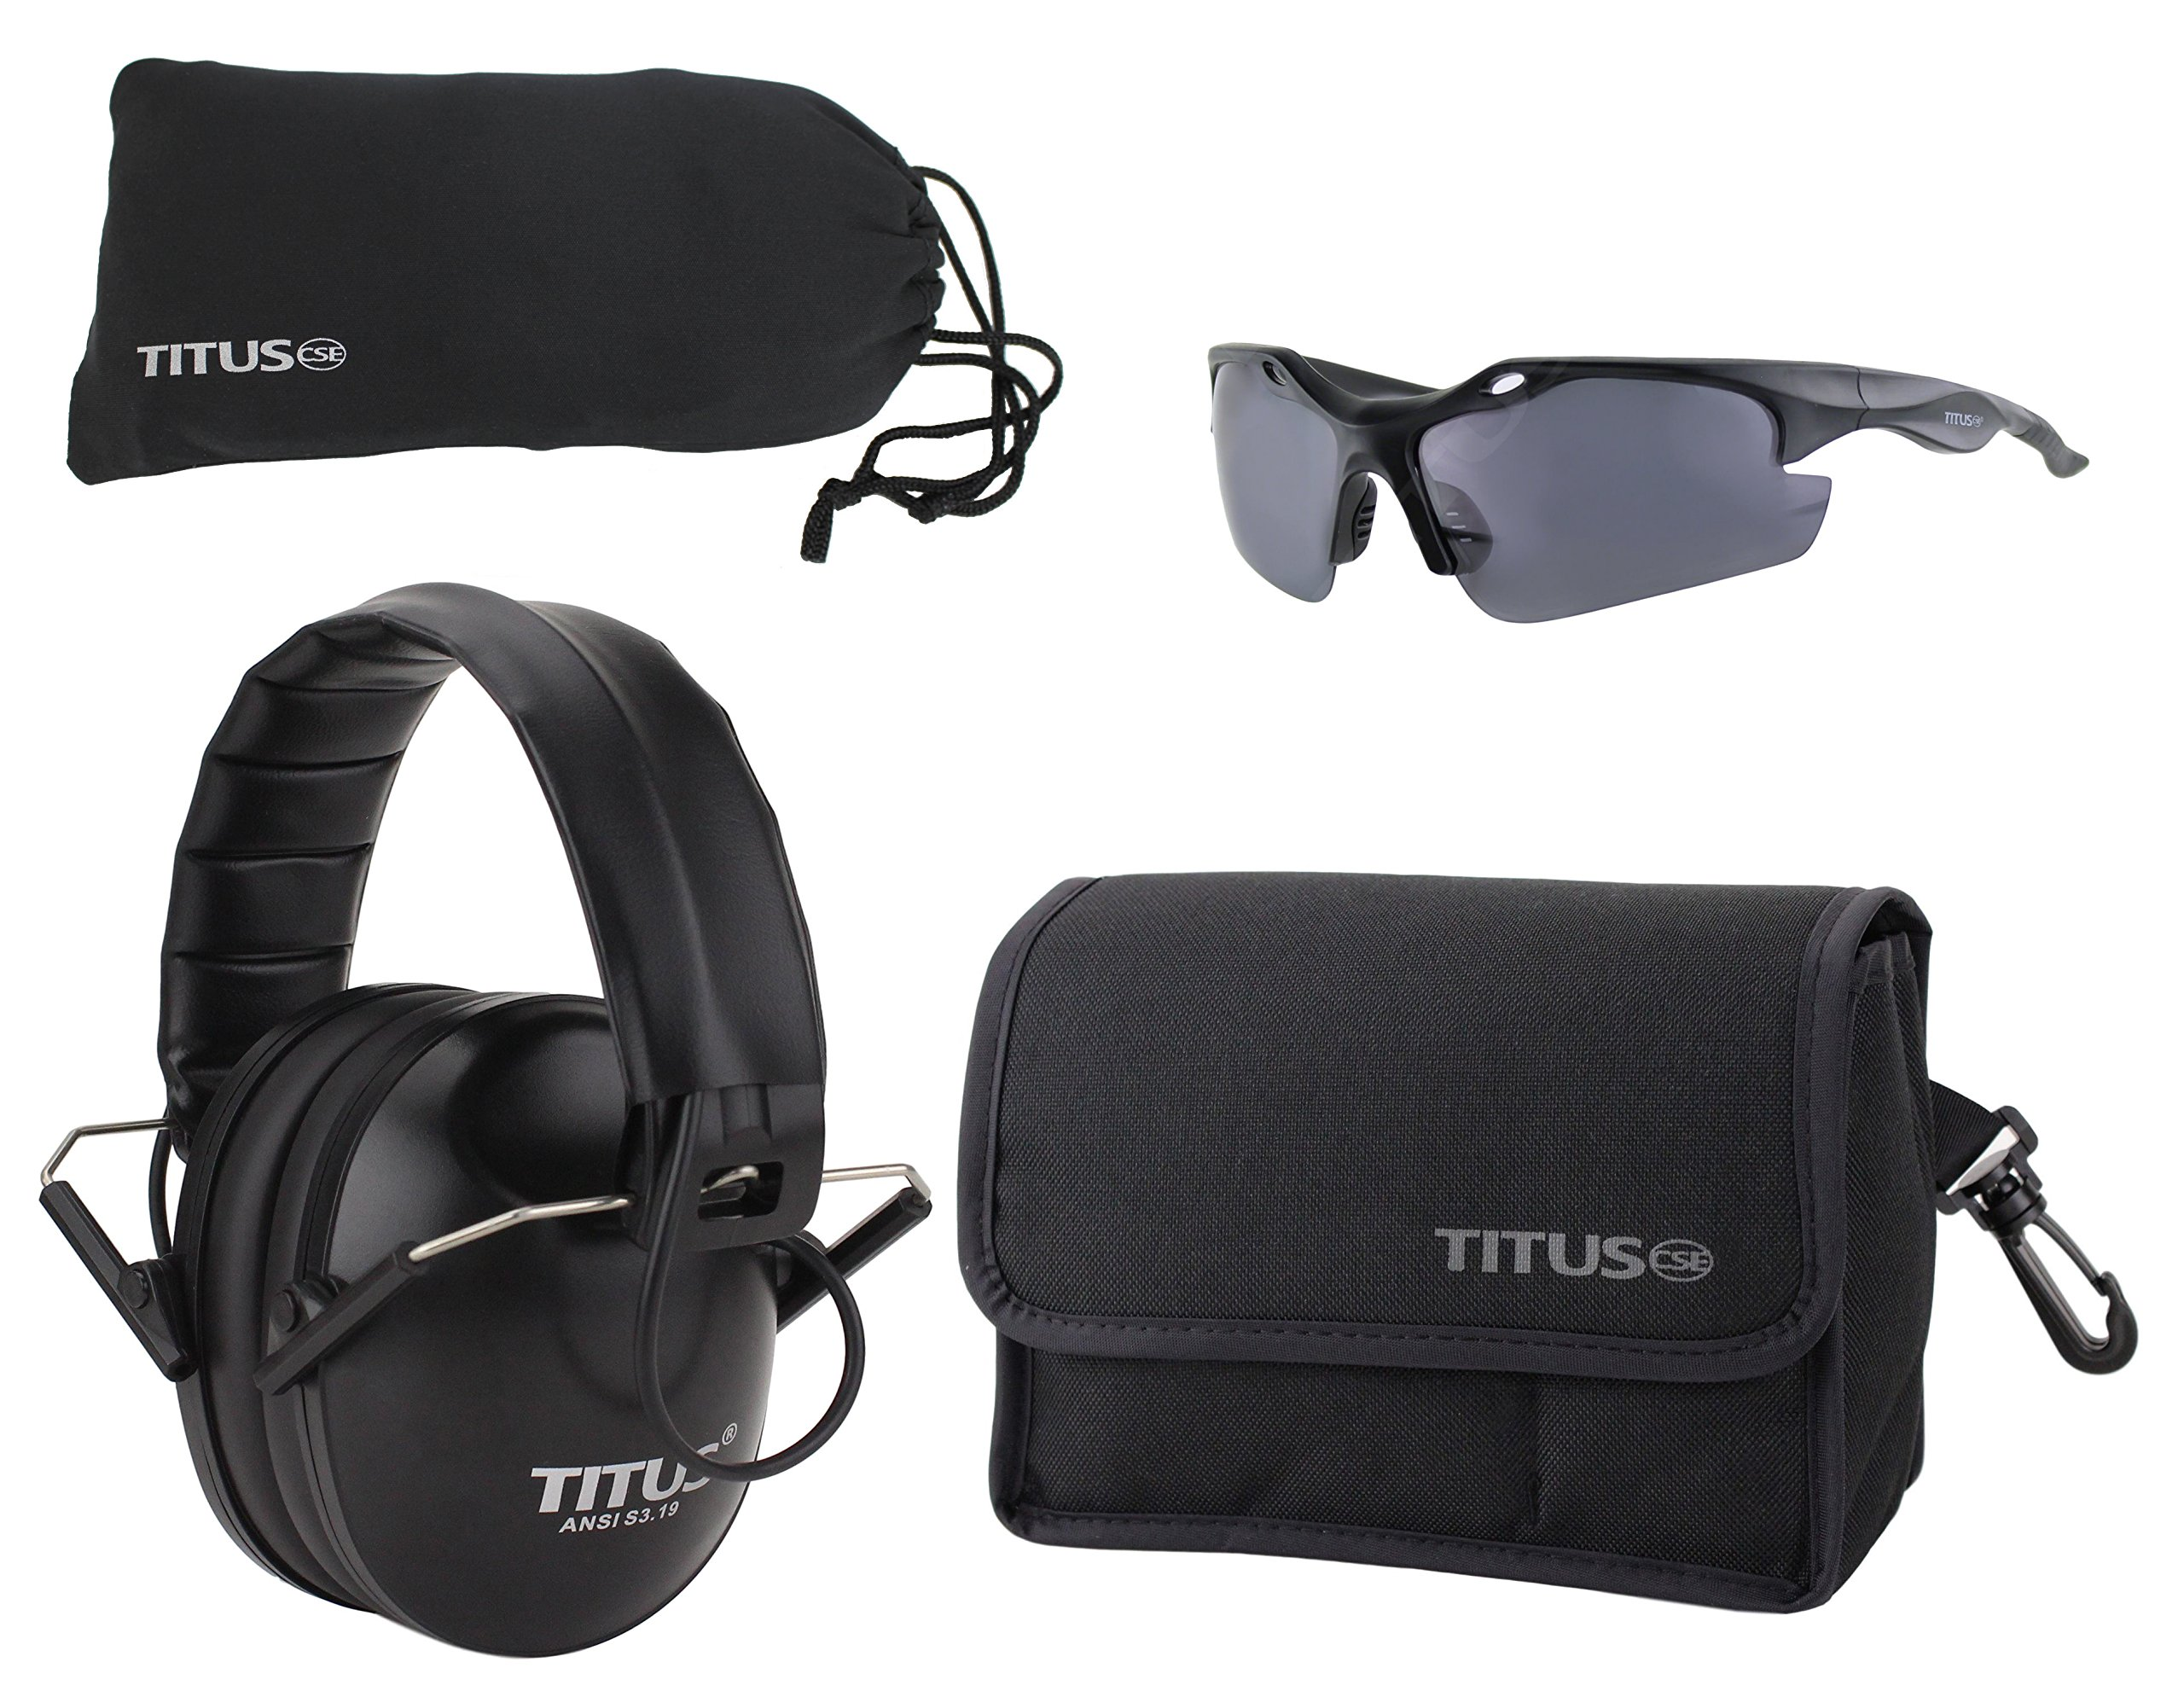 Titus TOP Slim-Line Safety Glasses and Earmuff Combos (Black - Electronic, G18 Reflective Polorized - Sculpted Frame)